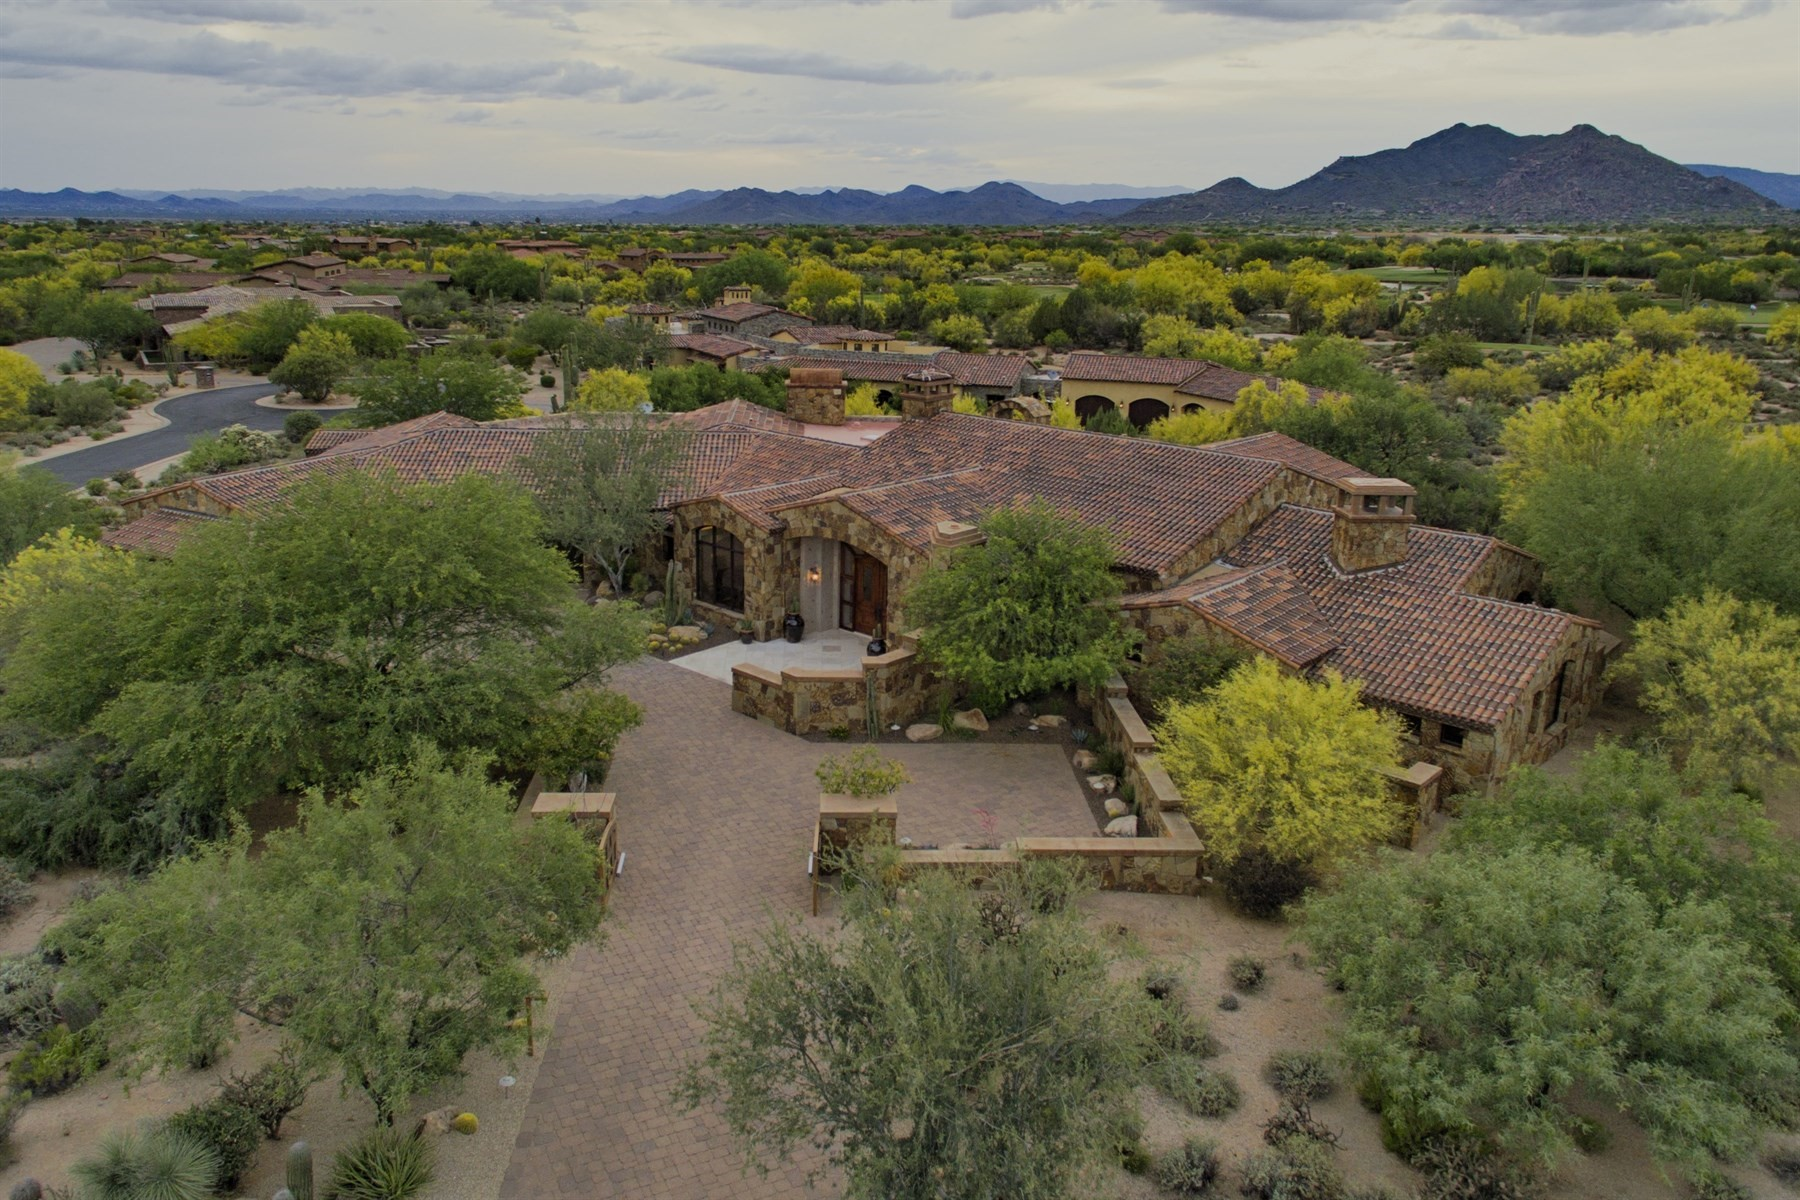 Single Family Home for Sale at Award-winning Builder and Architect combine to create an exquisite residence 7552 E Whisper Rock Trl Scottsdale, Arizona, 85266 United States